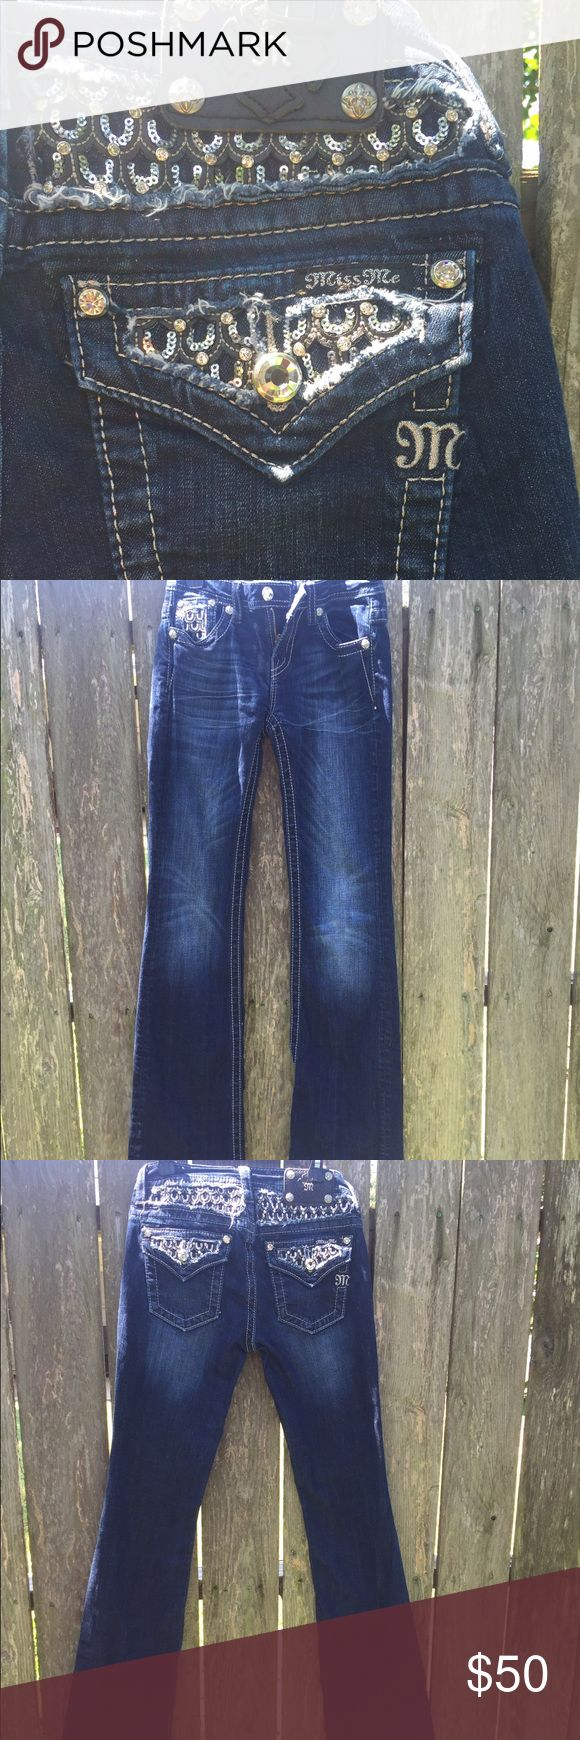 """Miss Me Sequin Horseshoe Insert Boot Cut Jeans *please note*- these jeans say """"size 16"""" because they are a """"kids"""" size. converted to an """"adult"""" size they would be a size 26.                       SIZE GUIDE!                                                             Waist 28"""" Hip 34"""" (some offers may be accepted) comment any questions down below 😊💗 Miss Me Jeans Boot Cut"""